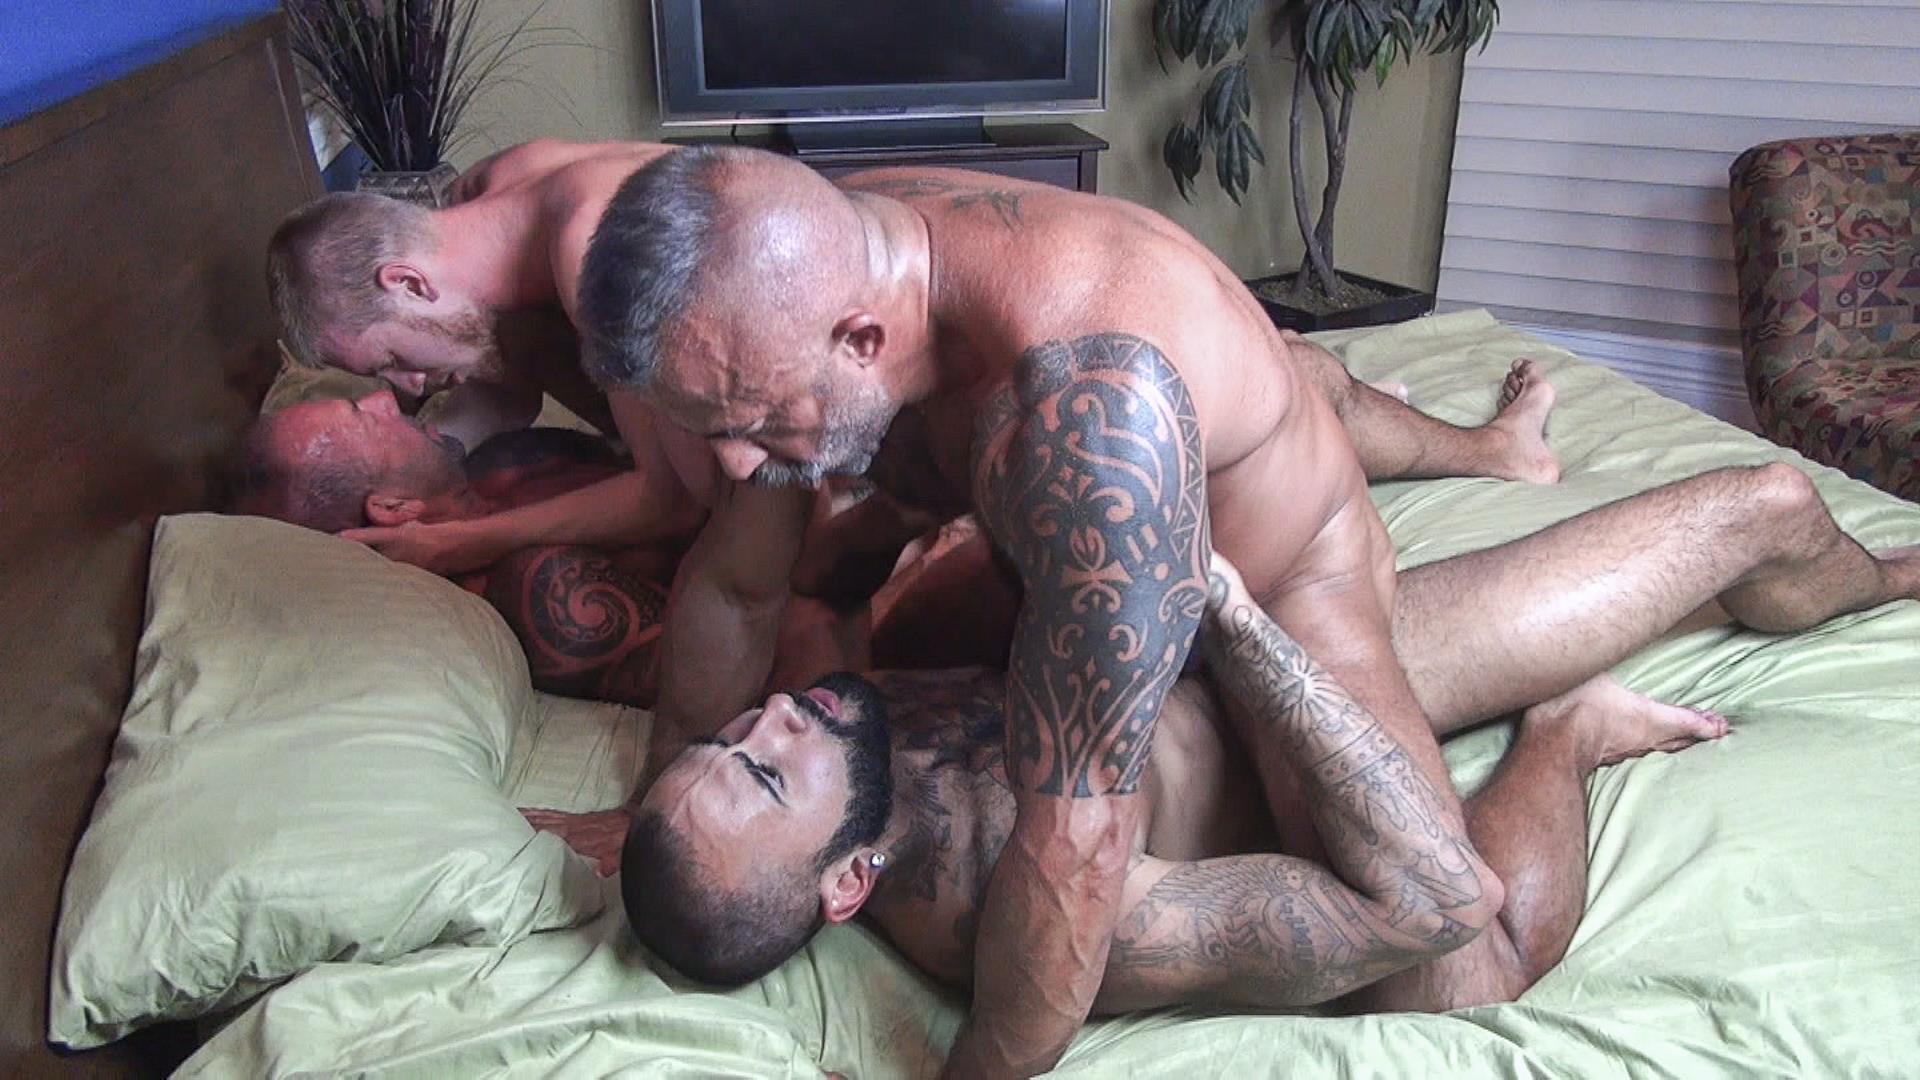 Raw Fuck Club Vic Rocco and Rikk York and Billy Warren and Job Galt Bareback Daddy Amateur Gay Porn 12 Four Hairy Muscle Daddies In A Bareback Fuck Fest Orgy